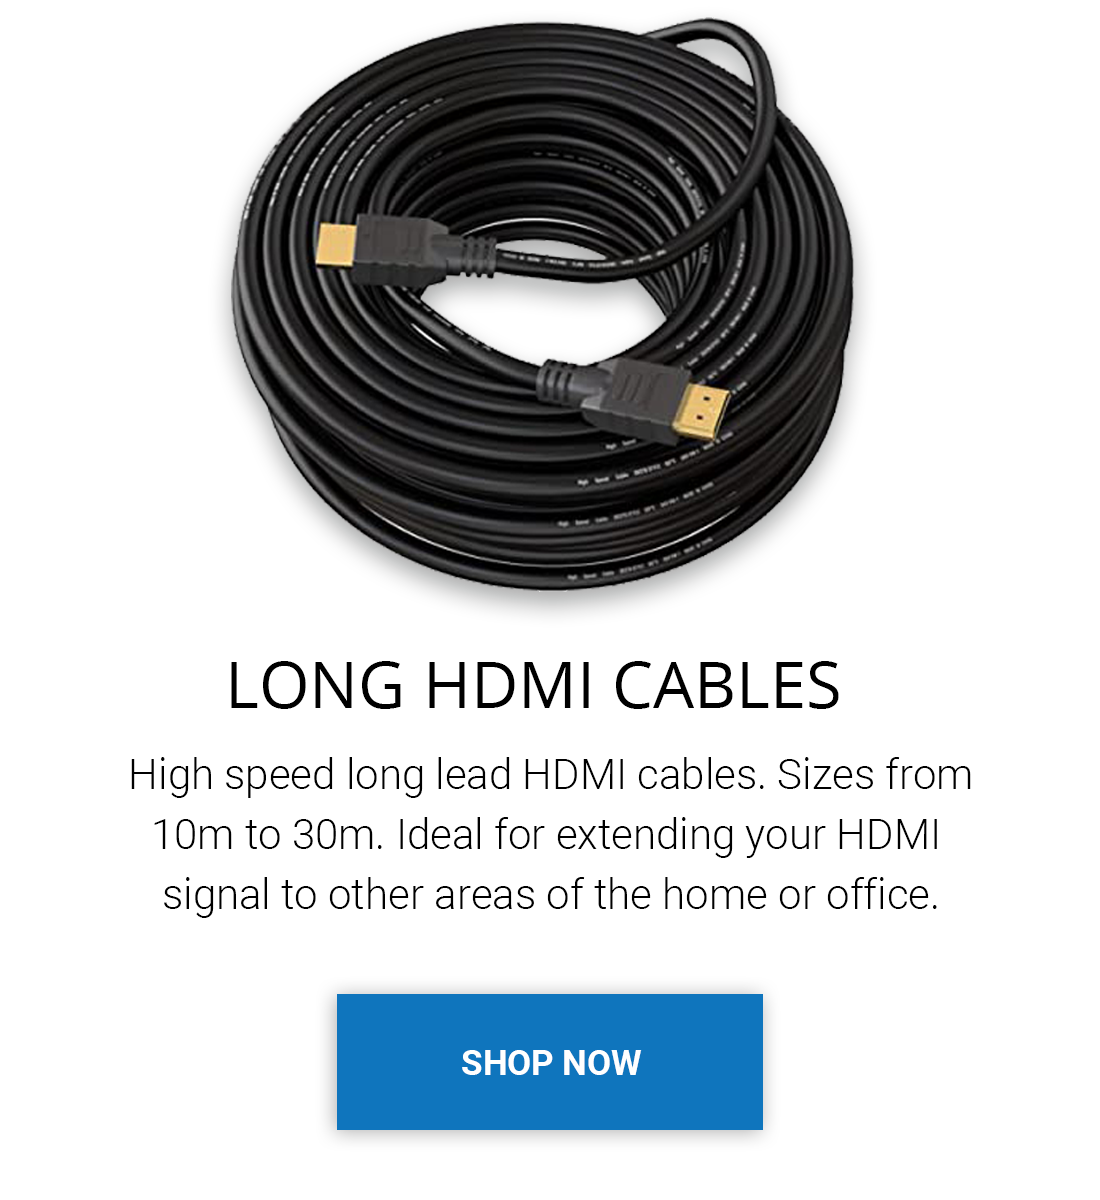 Long HDMI Cables. 20 meter hdmi cable. Long HDMI Leads for CCTV, Projectors, Sky TV, Virgin, OLED, PS4, Xbox One. 1080p Full HD